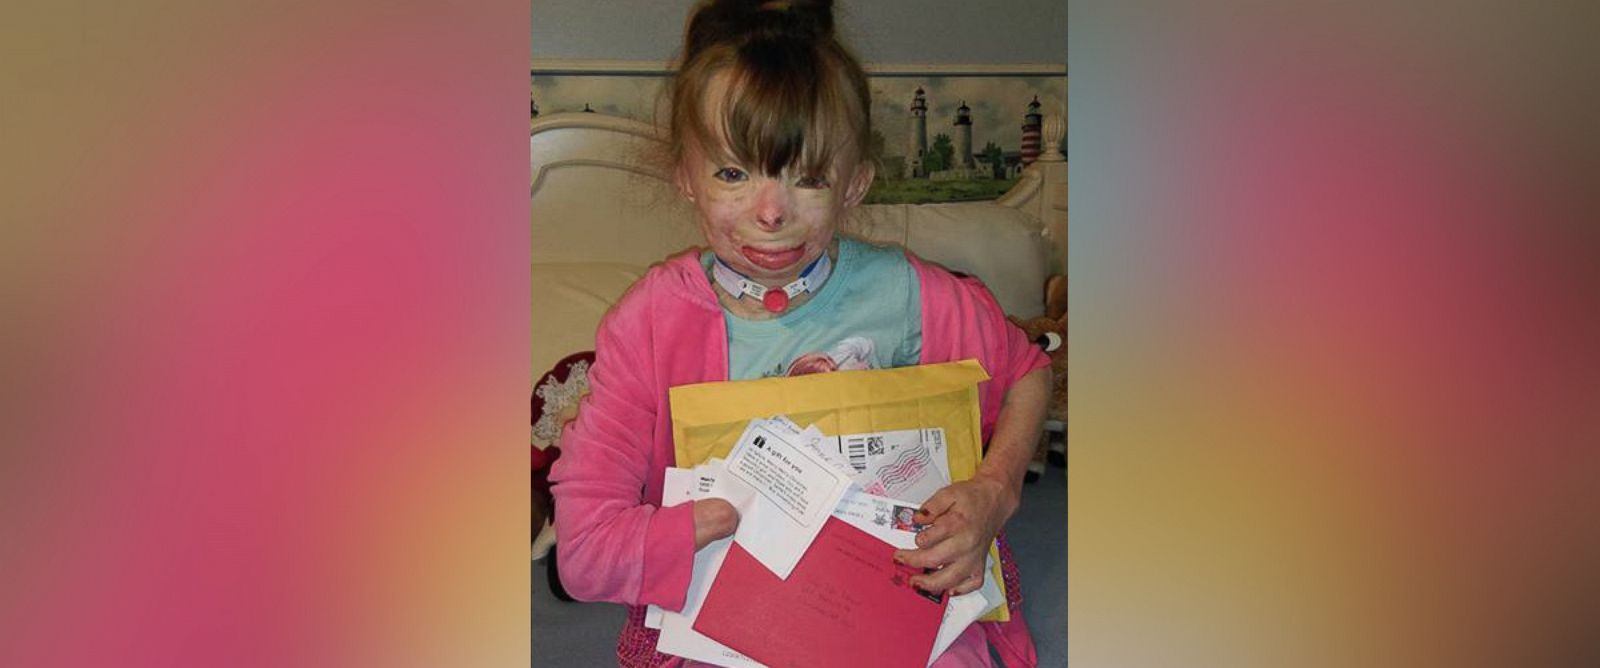 PHOTO: Safyre, 8, told her aunt the only thing she wanted for Christmas was cards from all over the world. An arson fire killed her father and three siblings in 2013 and burned 75 percent of her body.